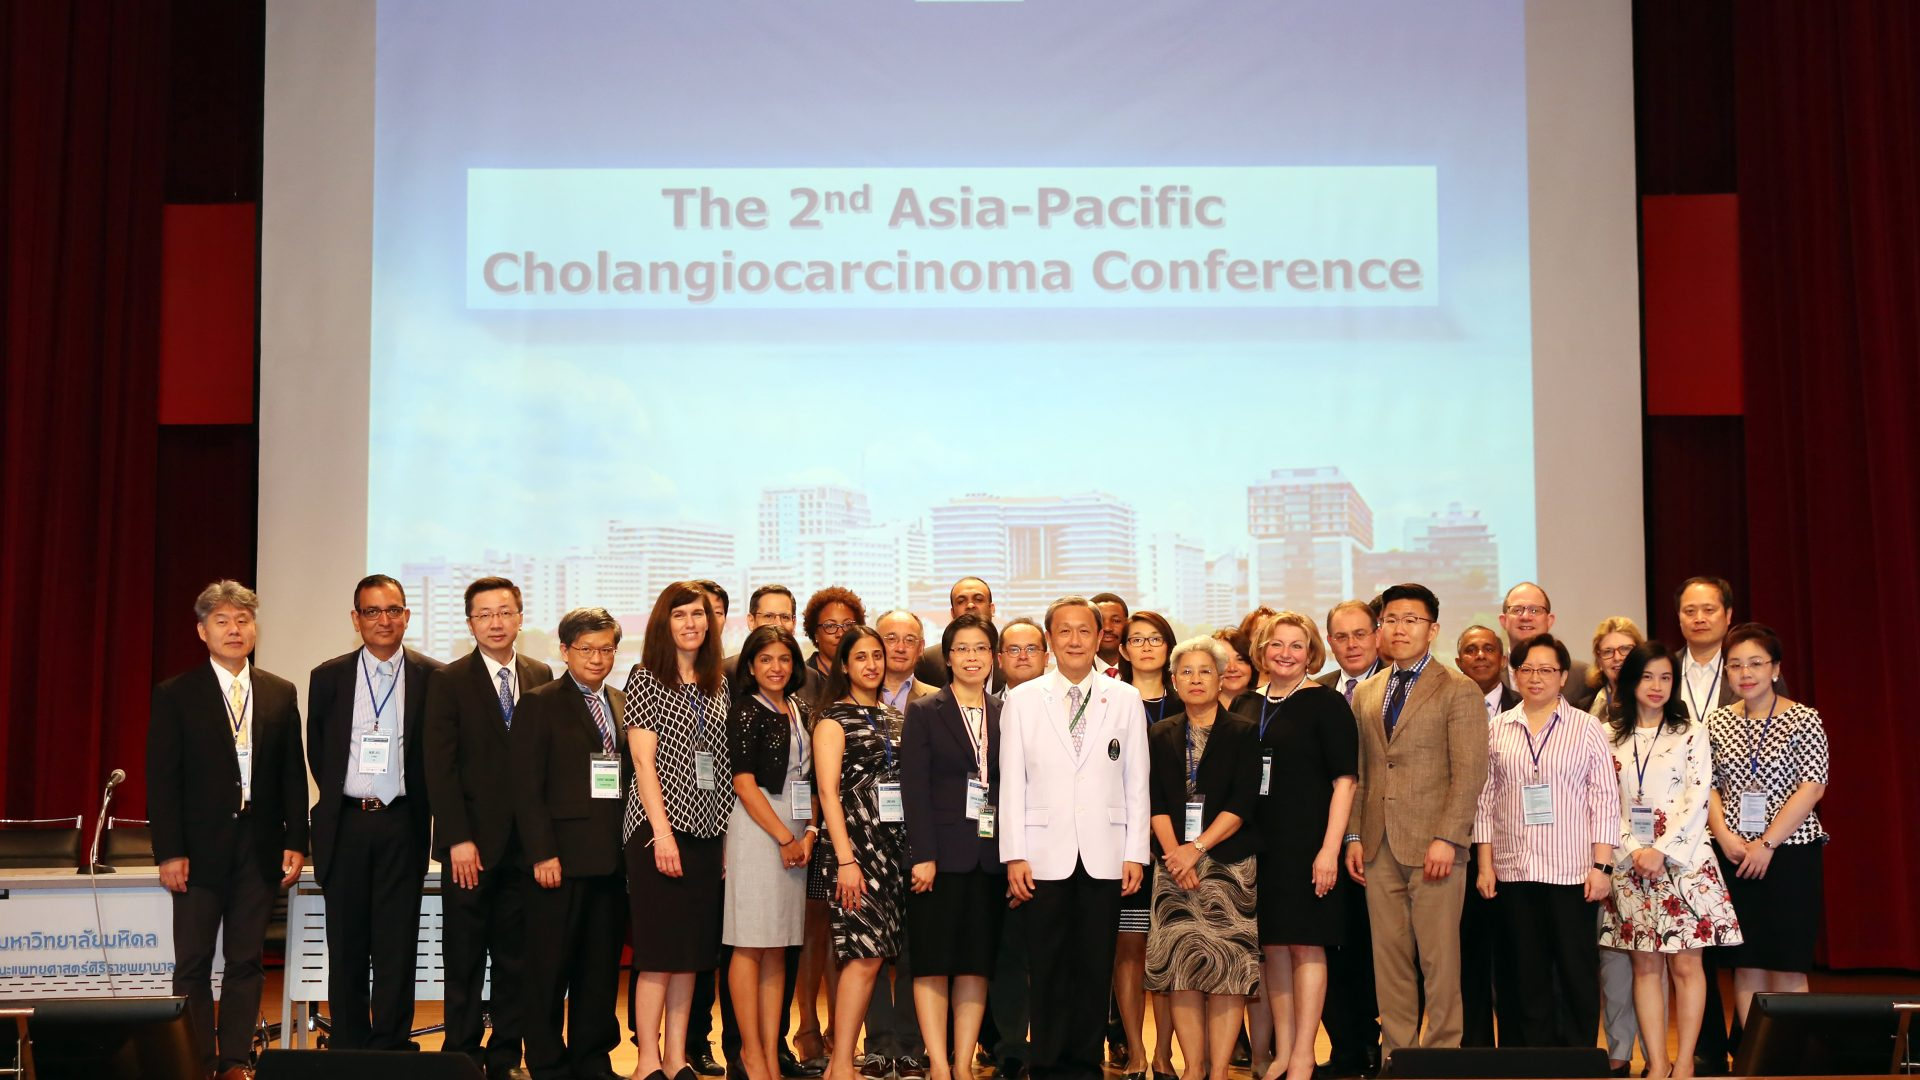 The 2nd Asia-Pacific Cholangiocarcinoma Conference